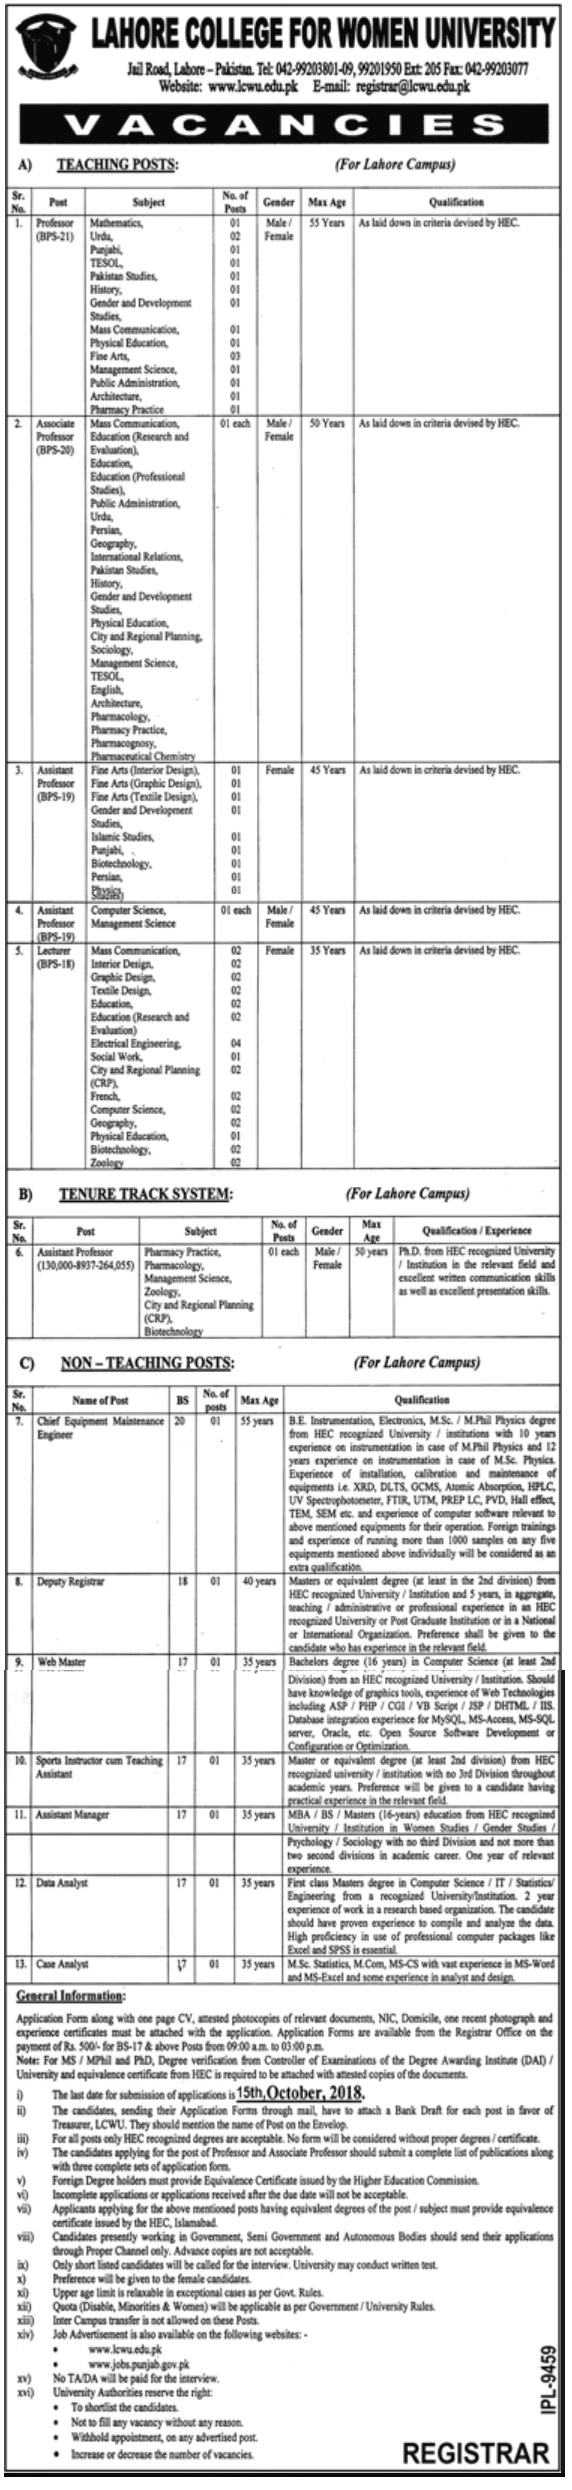 Lahore College for Women University Latest Jobs 2018